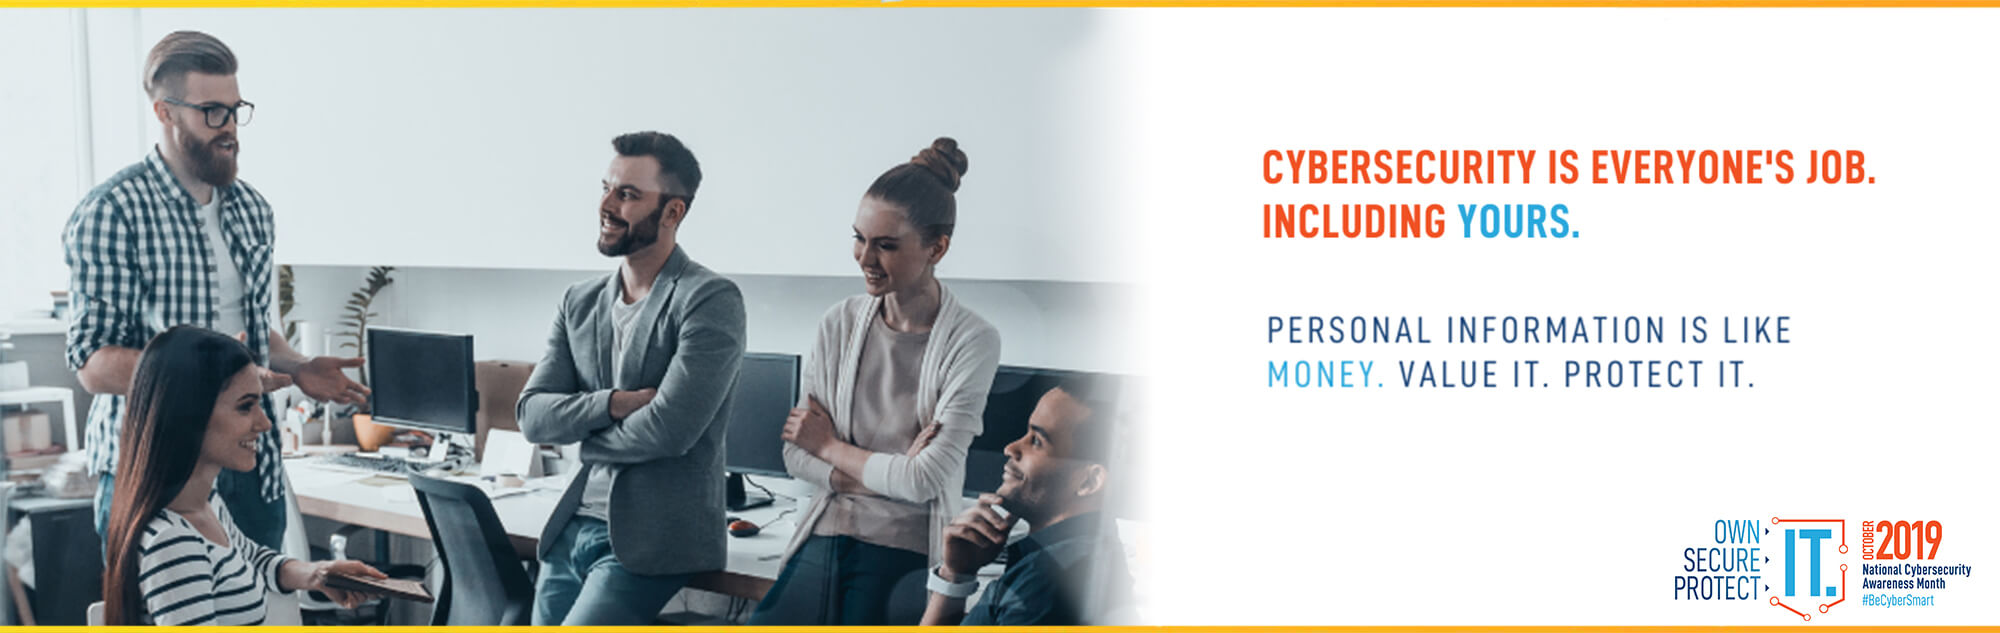 Cybersecurity is everyone's job. Including yours. Personal information is like money. Value it. Protect it.